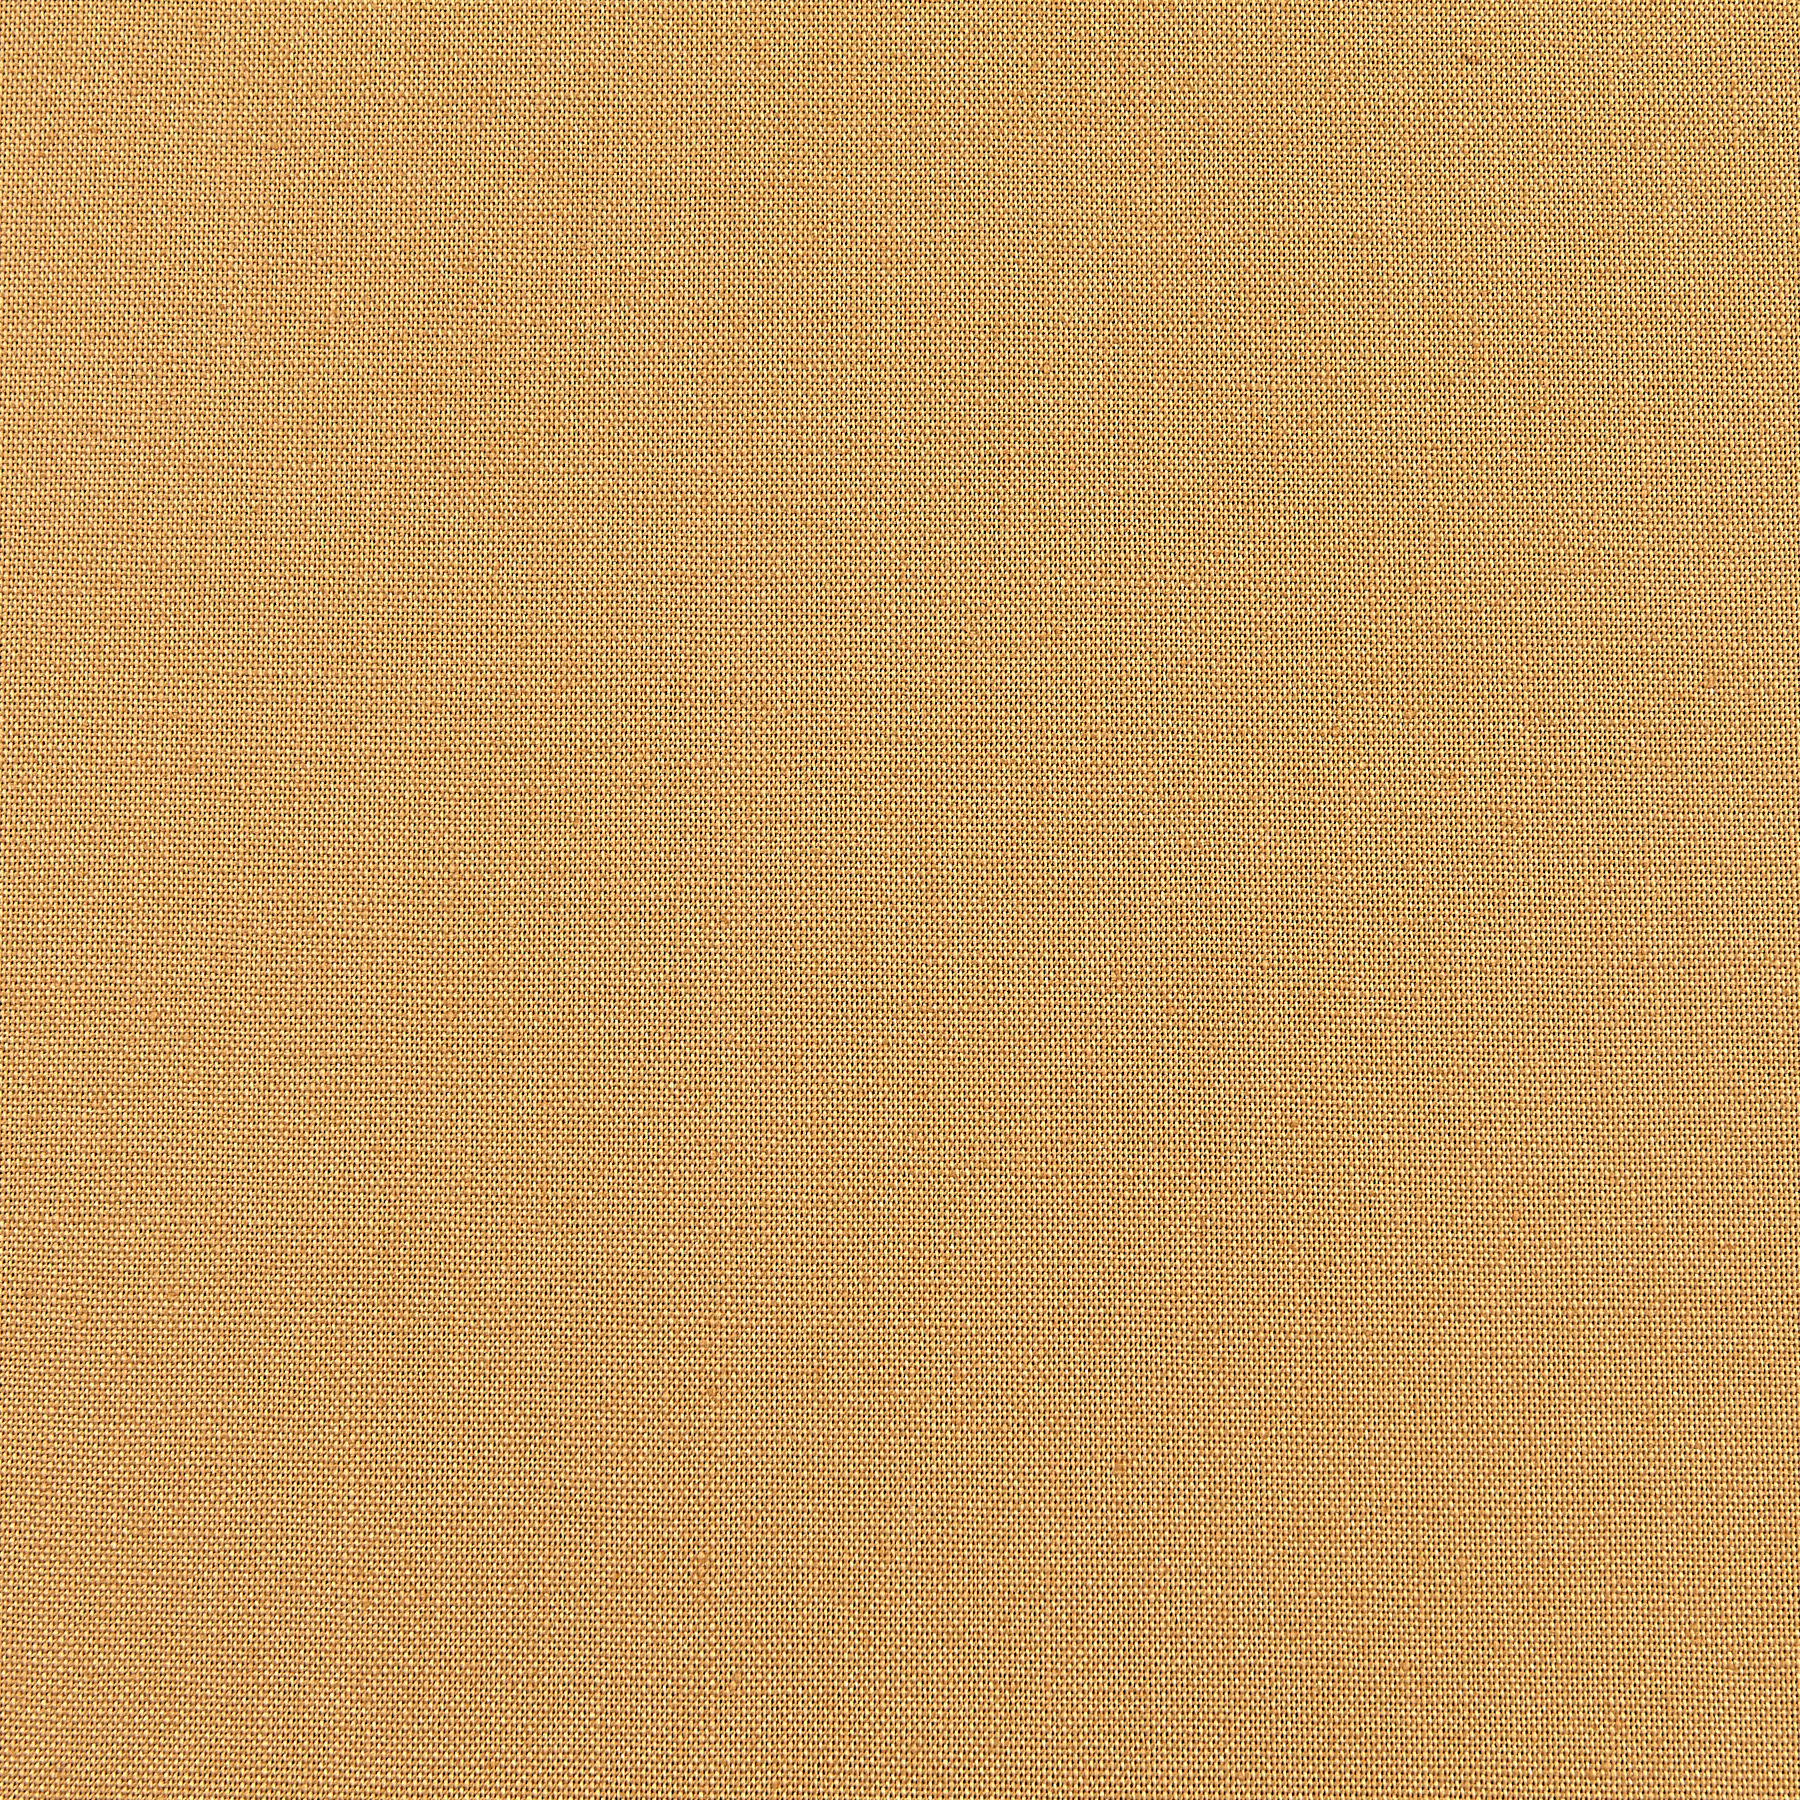 Kona Cotton Wheat Fabric